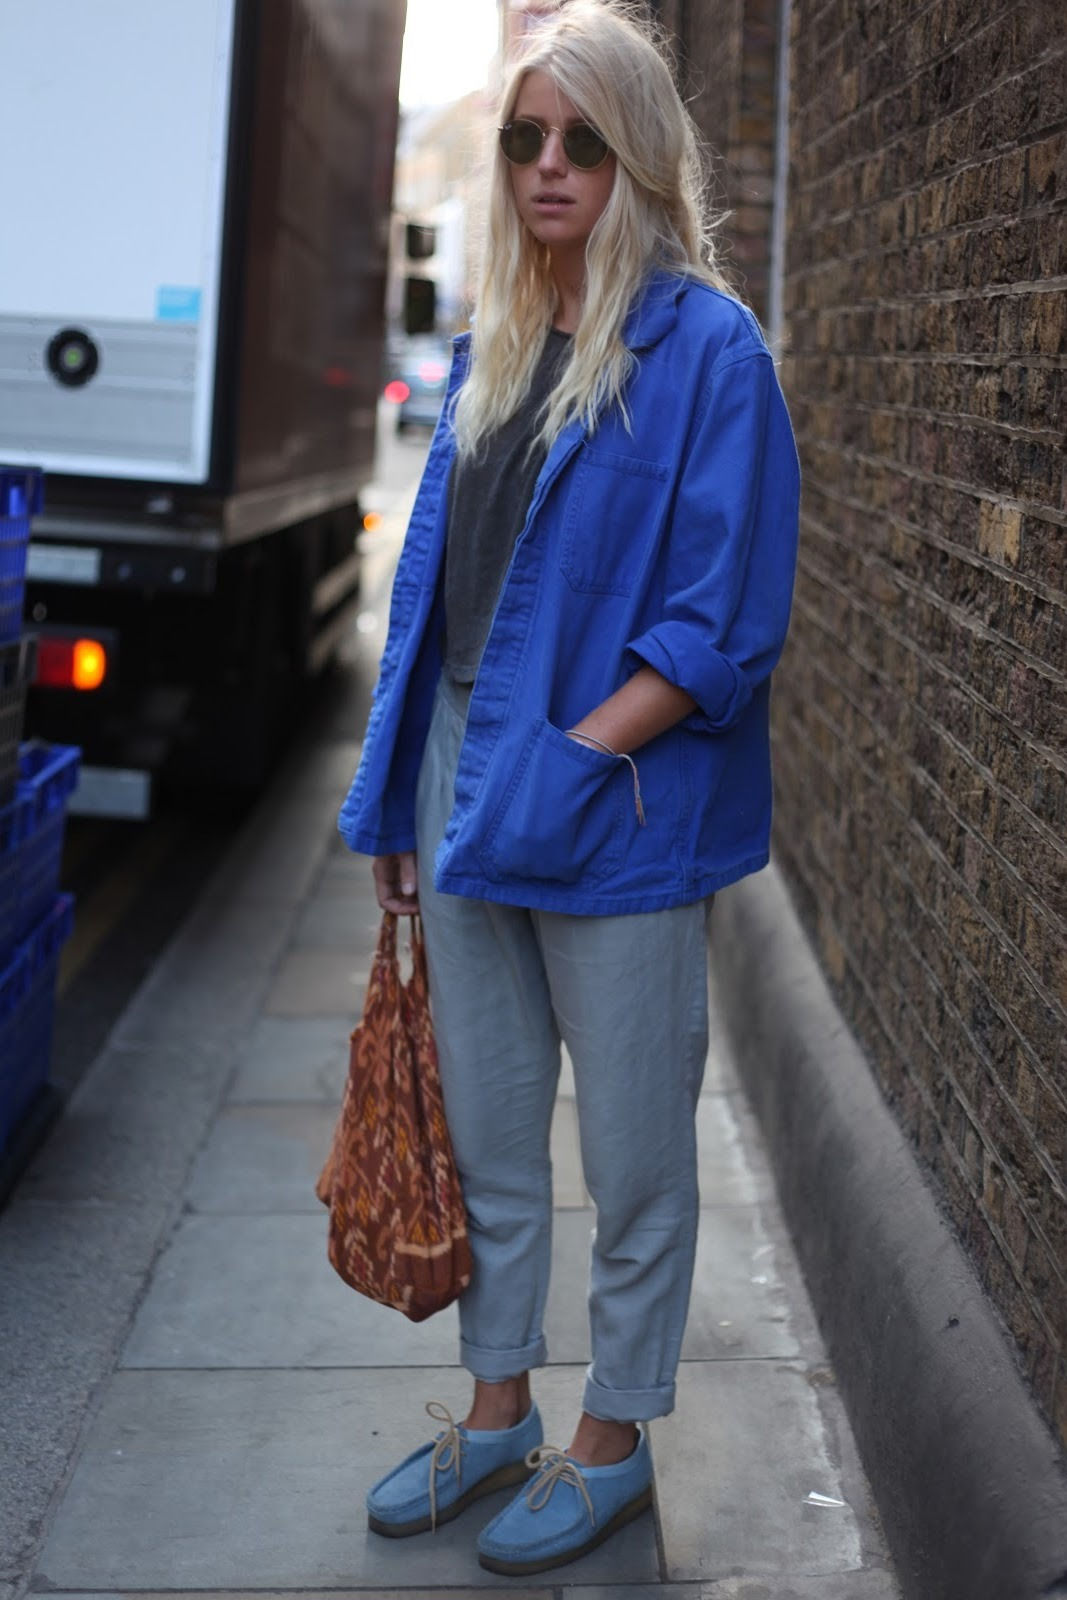 kendaatlarge:  london fashion by paul: street muses - shelton street, covent garden, london.